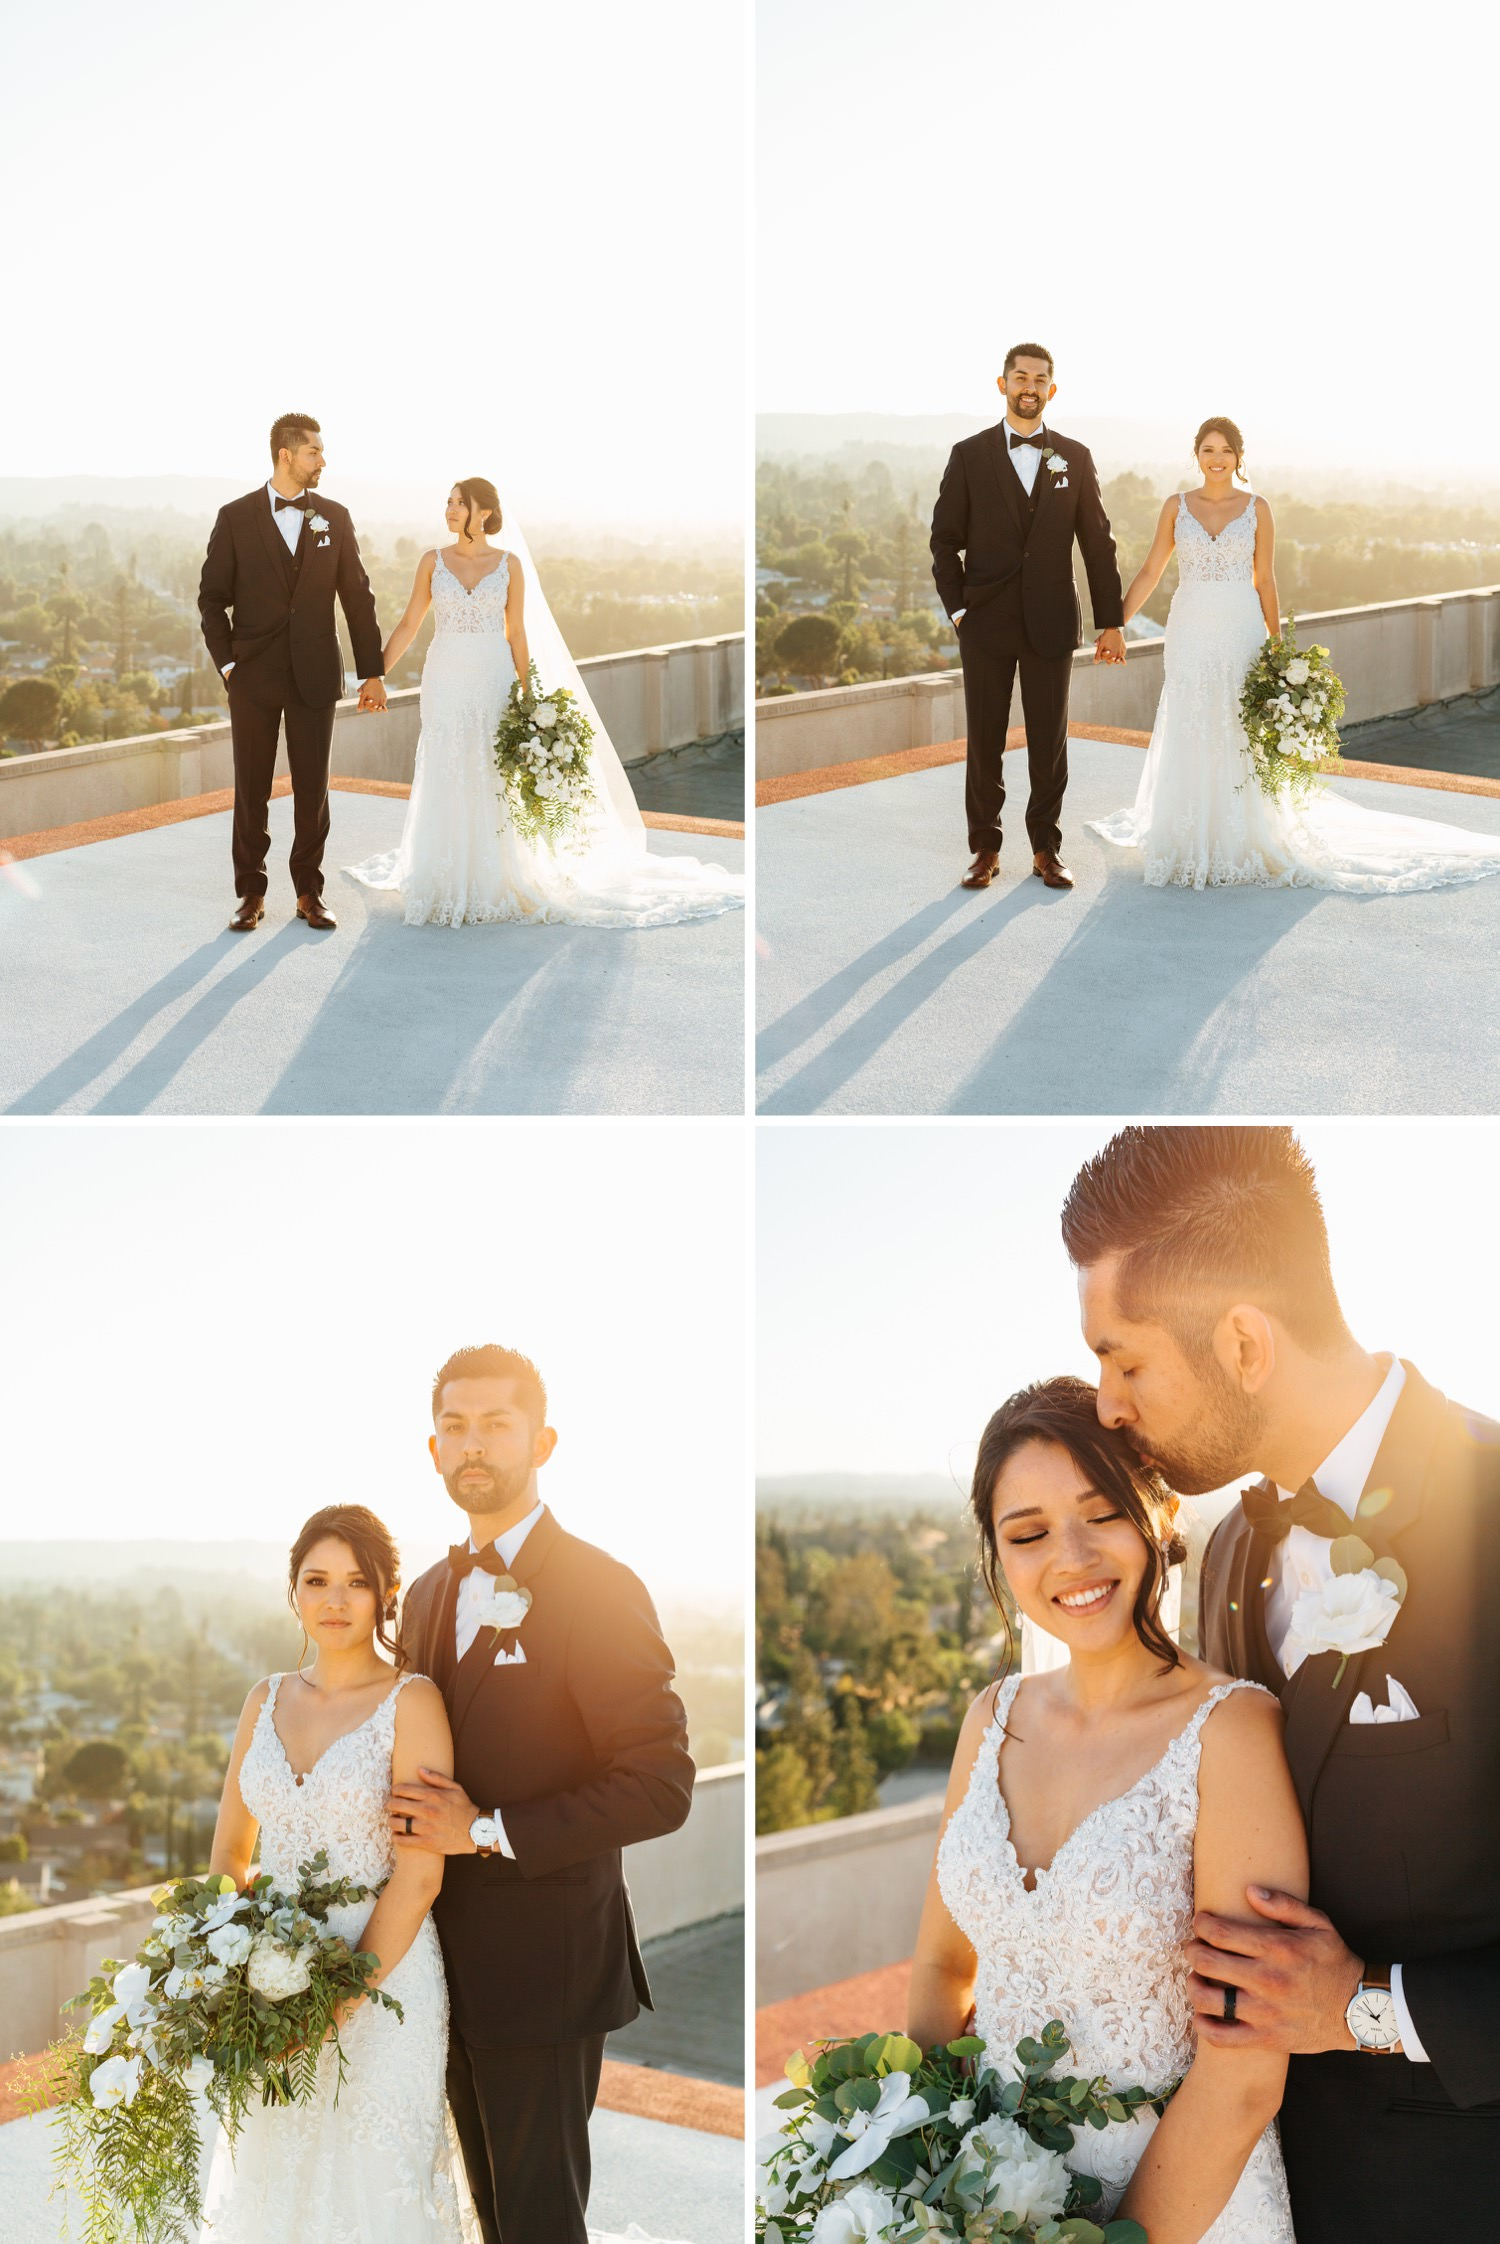 Natural Light Wedding Photographer - Los Angeles Wedding Photography - Bride and Groom Photos - https://brittneyhannonphotography.com